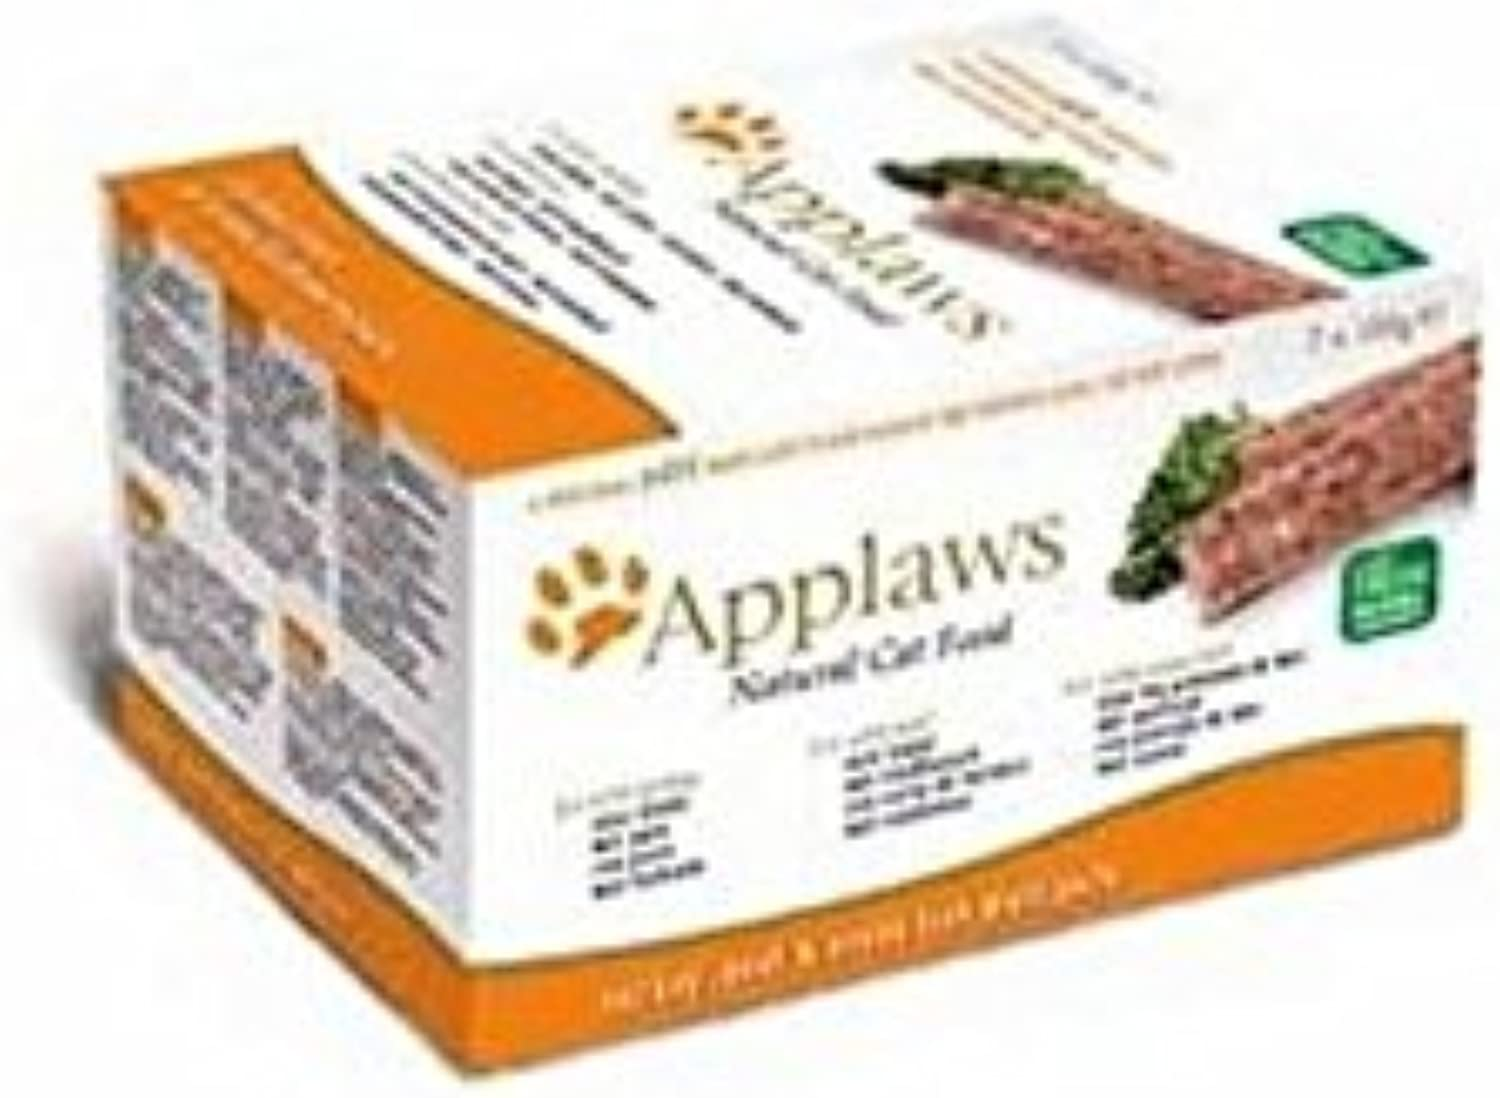 Applaws Multipack Pate 2 7 Pack (852g) (Pack of 4)